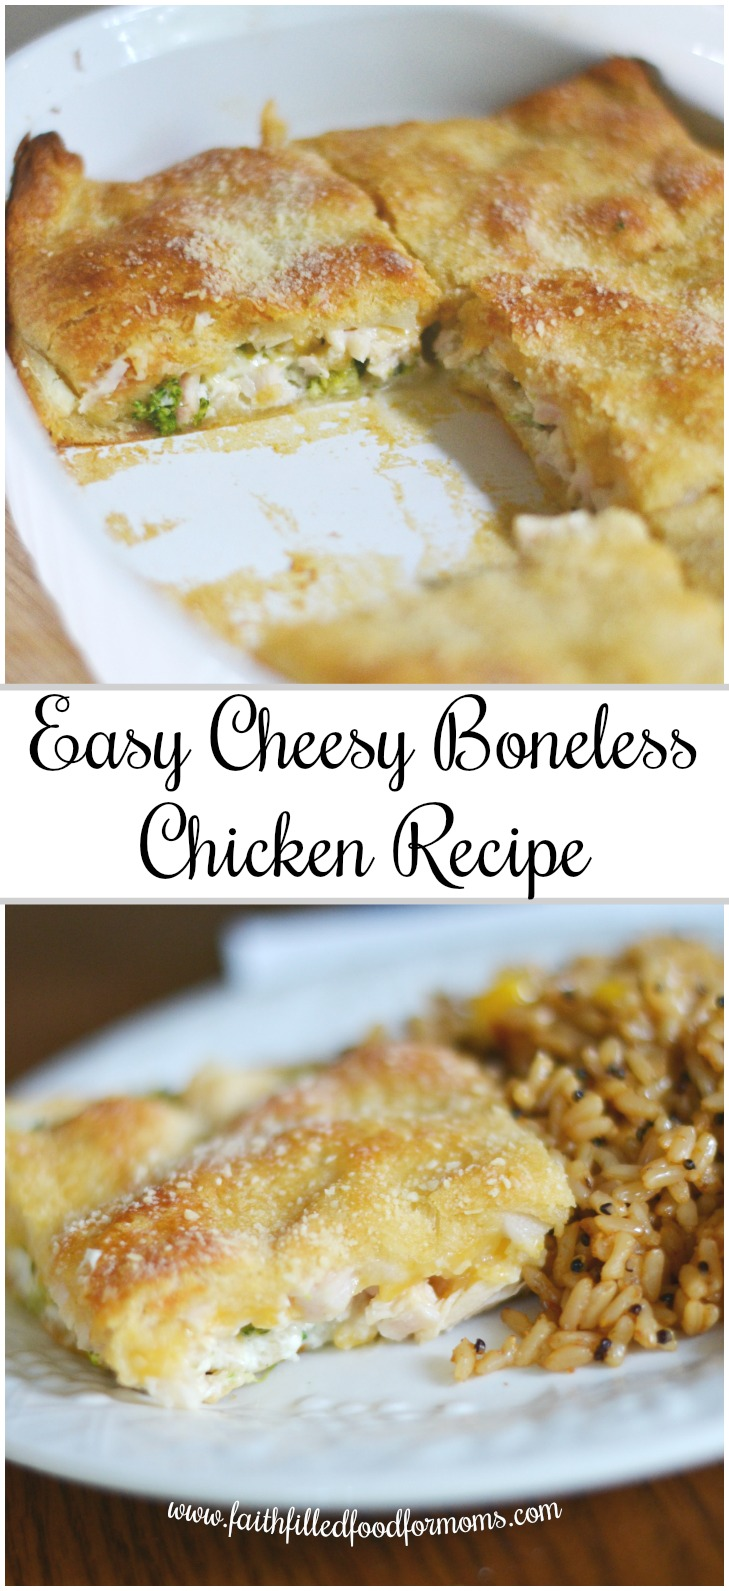 Easy Cheesy Layered Chicken Breast Recipe _ so easy and healthy, kids love it!